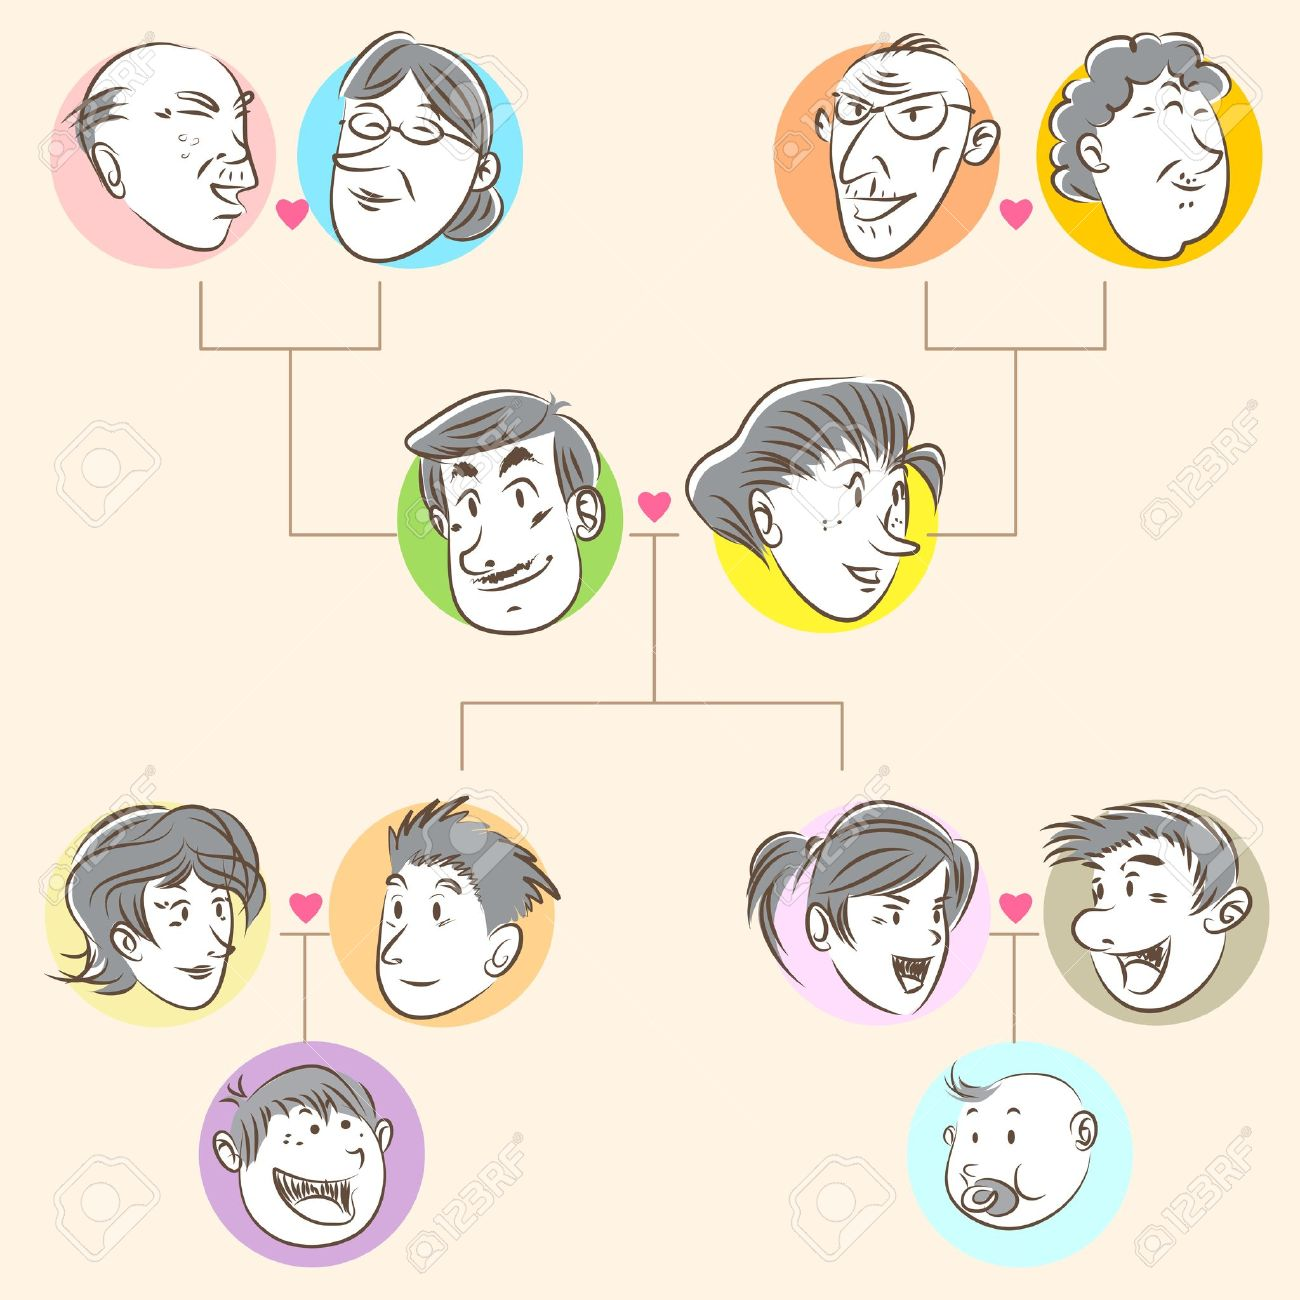 Family Tree Doodle Style - 18706254